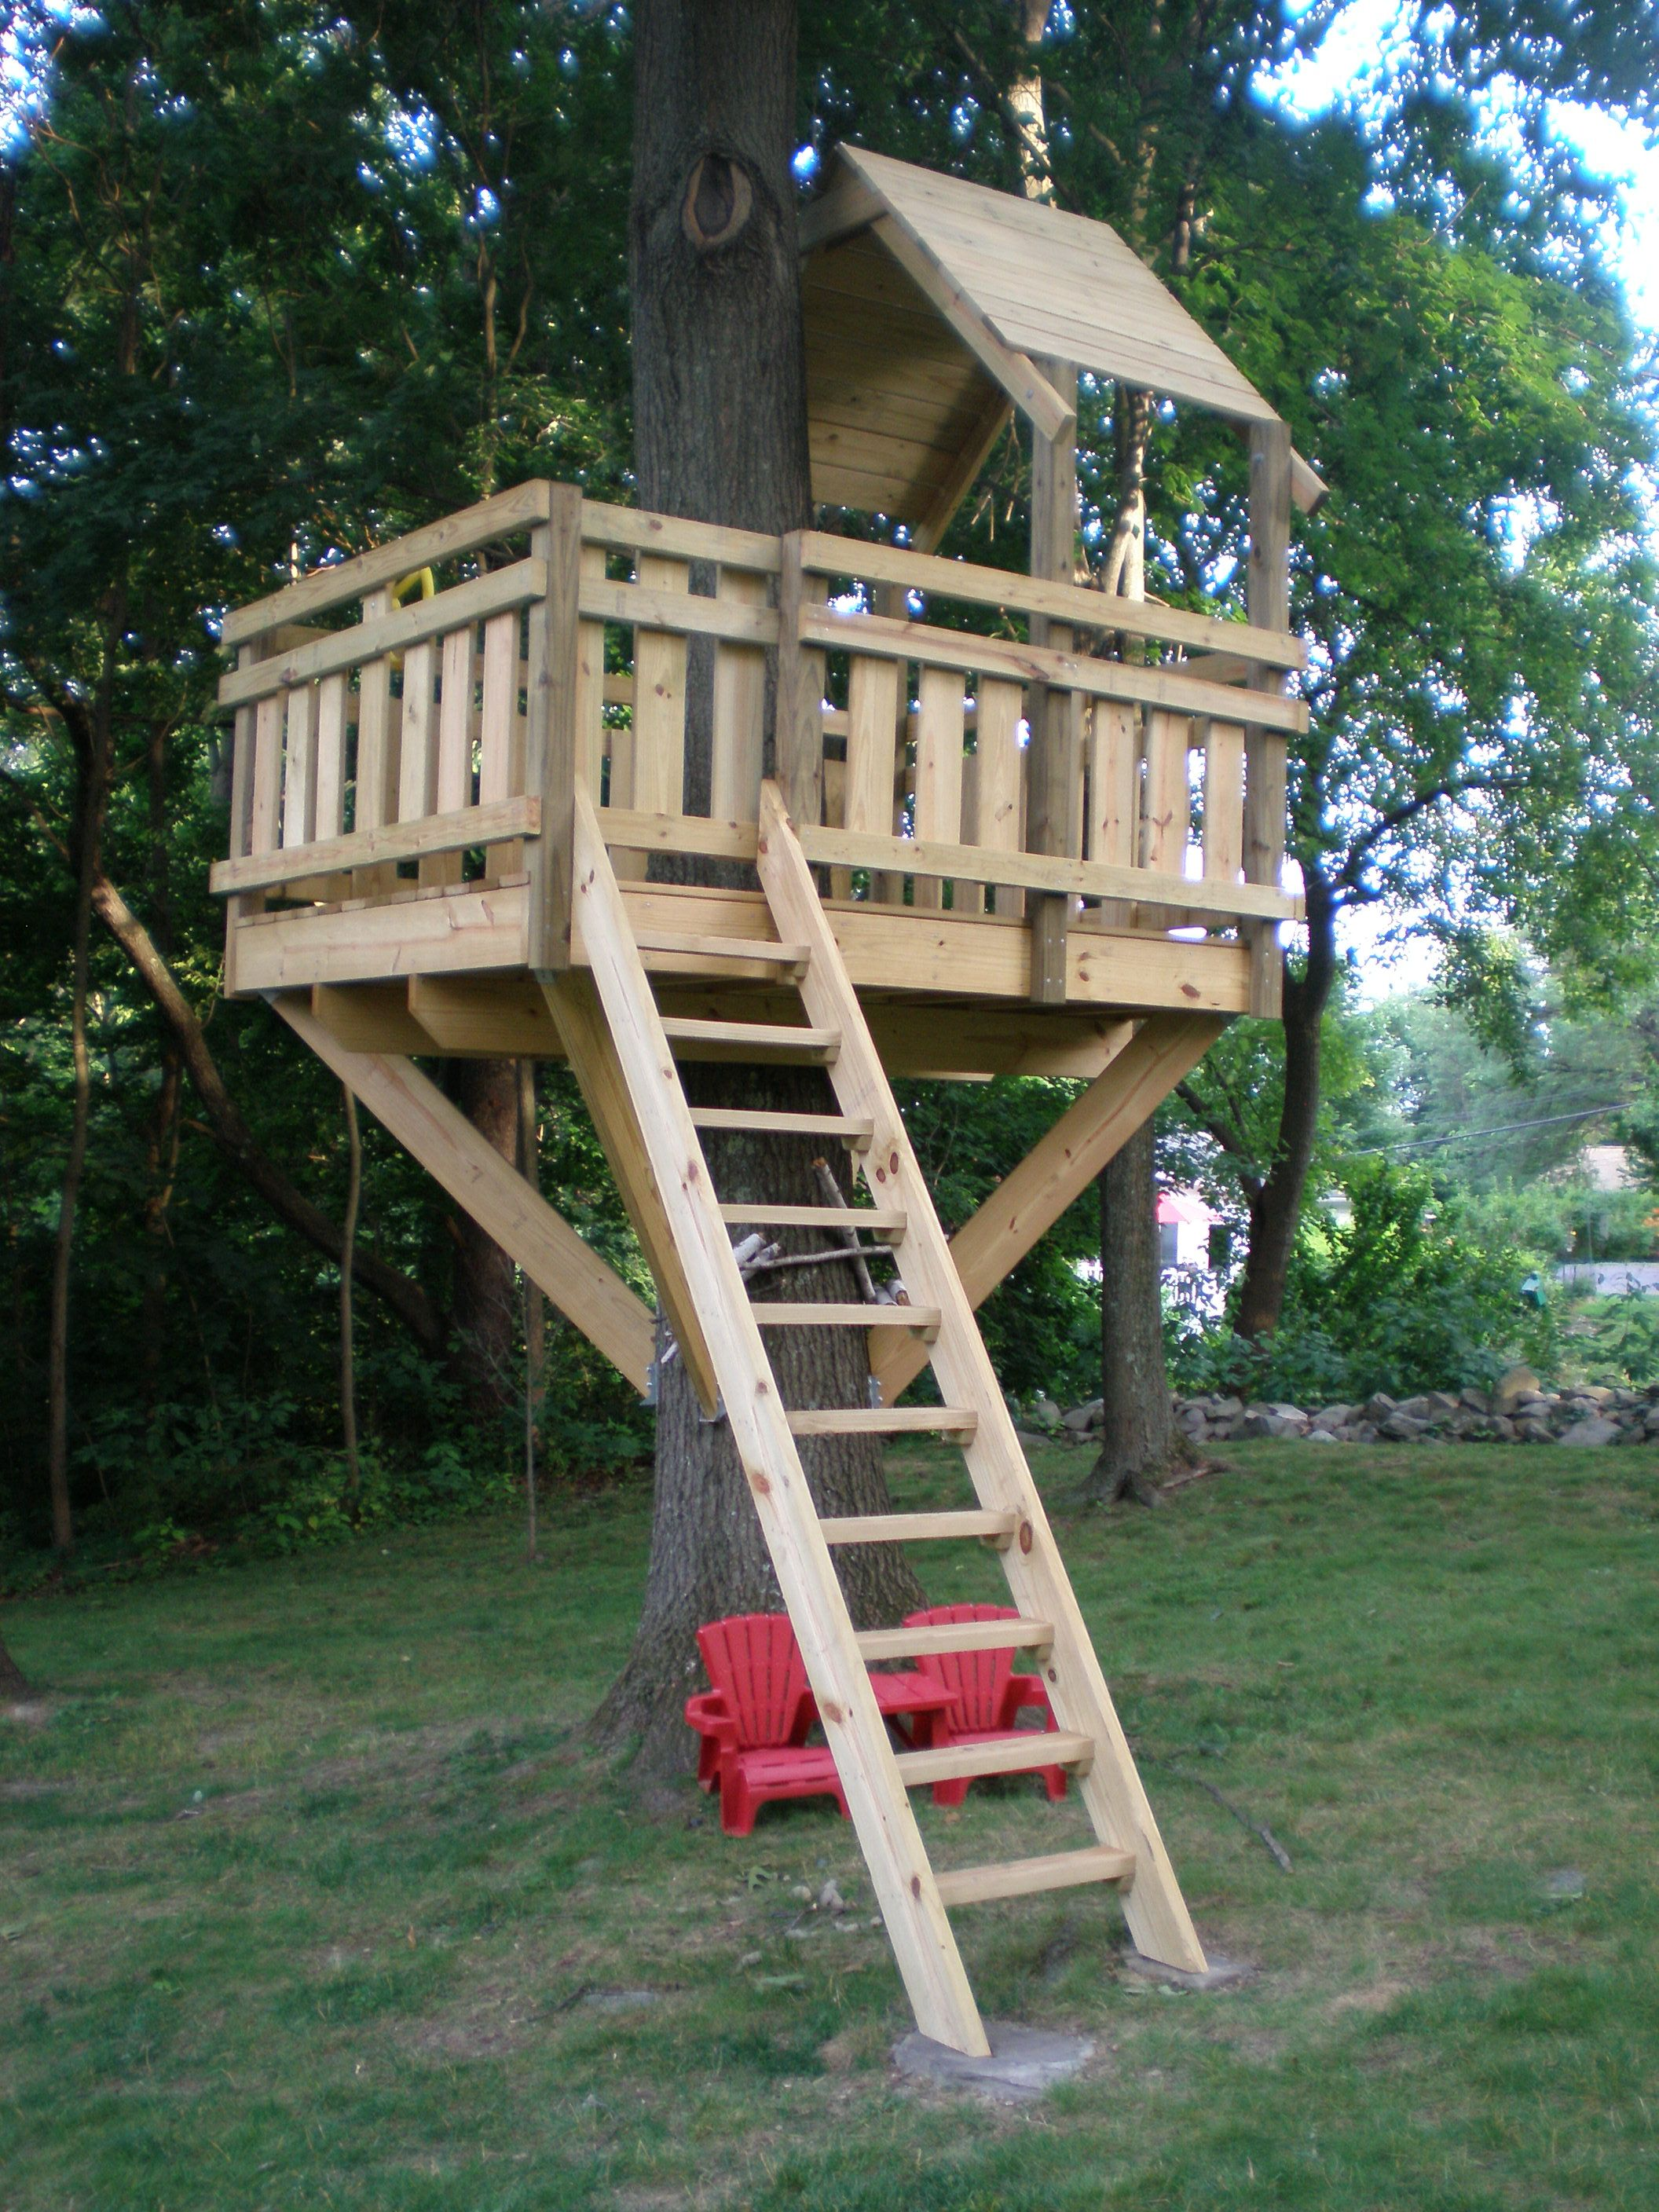 Tree Fort Ladder, Gate, Roof [Finale]